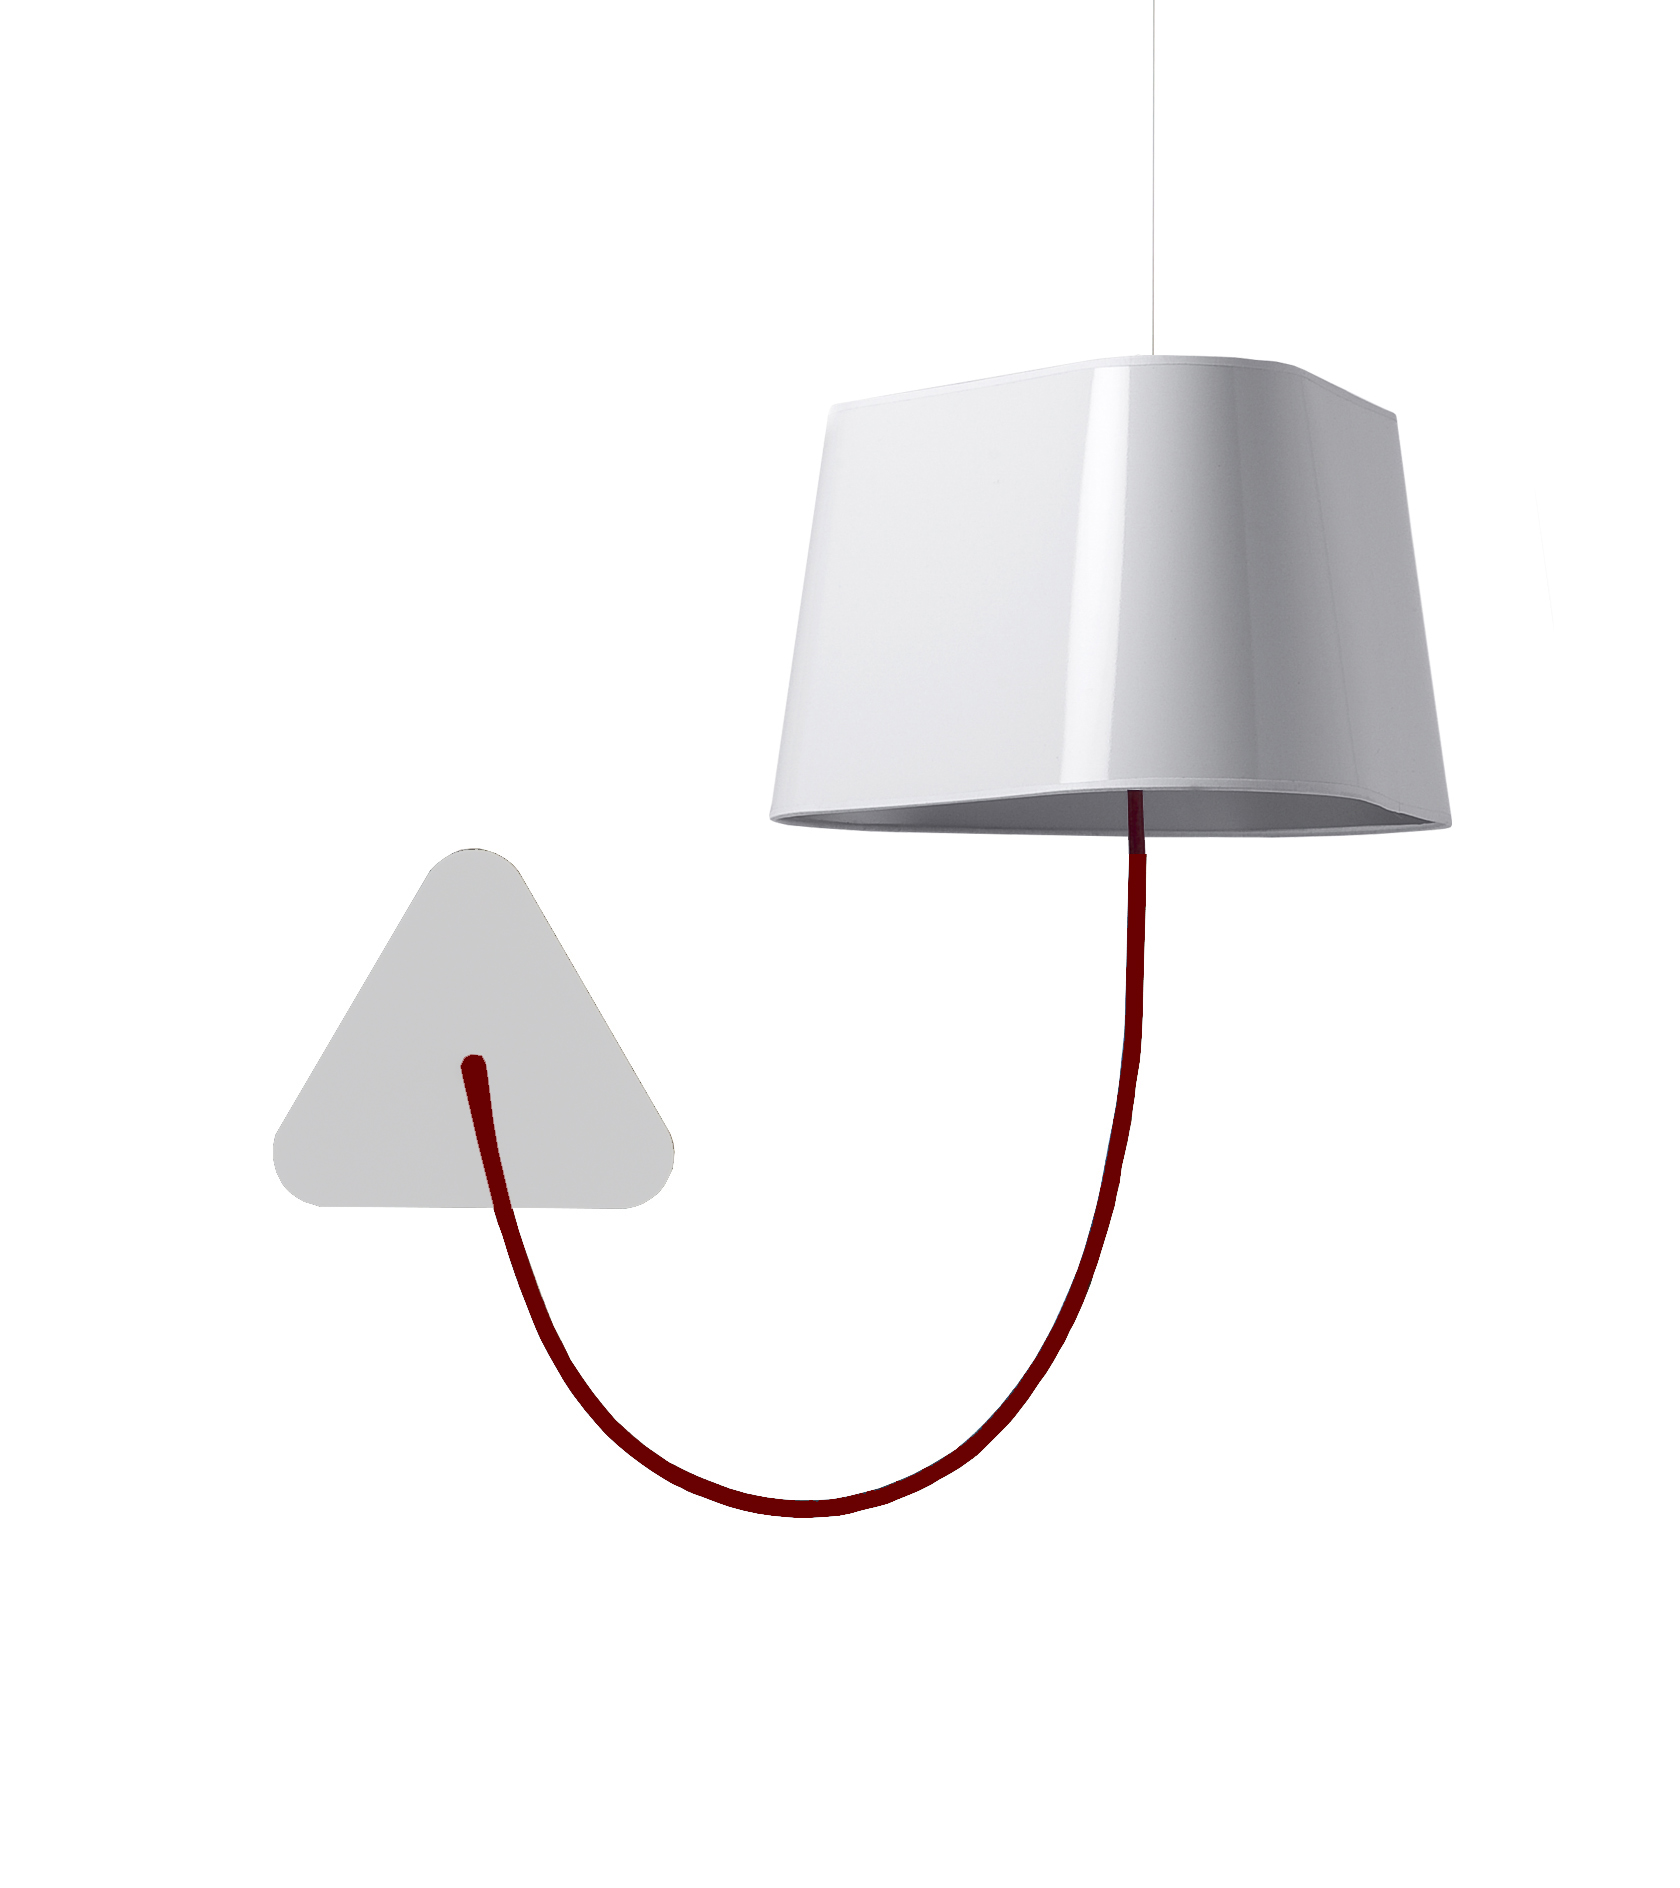 applique suspendue petit nuage blanc rouge 24cm designheure luminaires nedgis. Black Bedroom Furniture Sets. Home Design Ideas